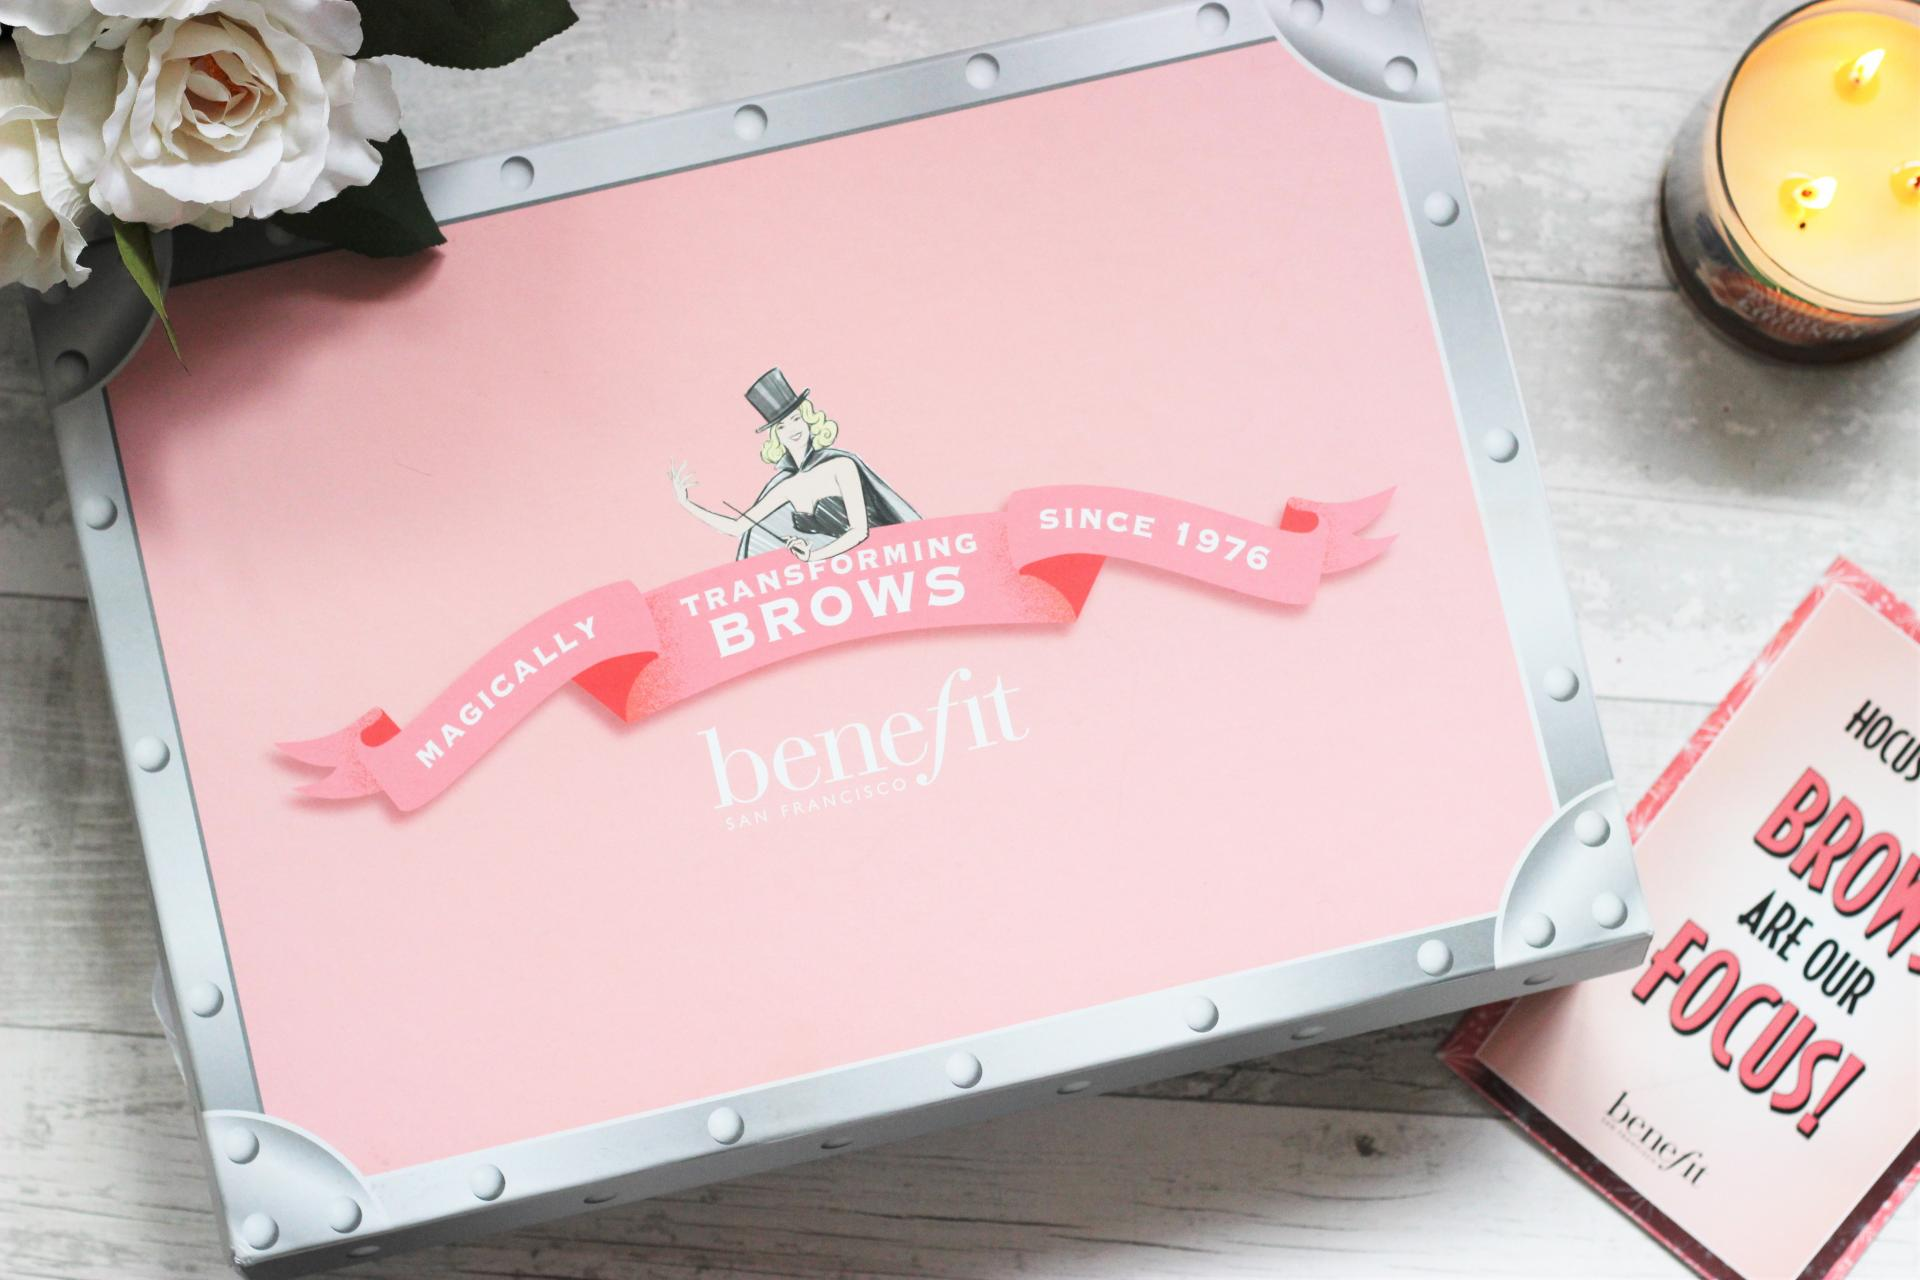 The Definitive Guide to the Benefit Brow Collection